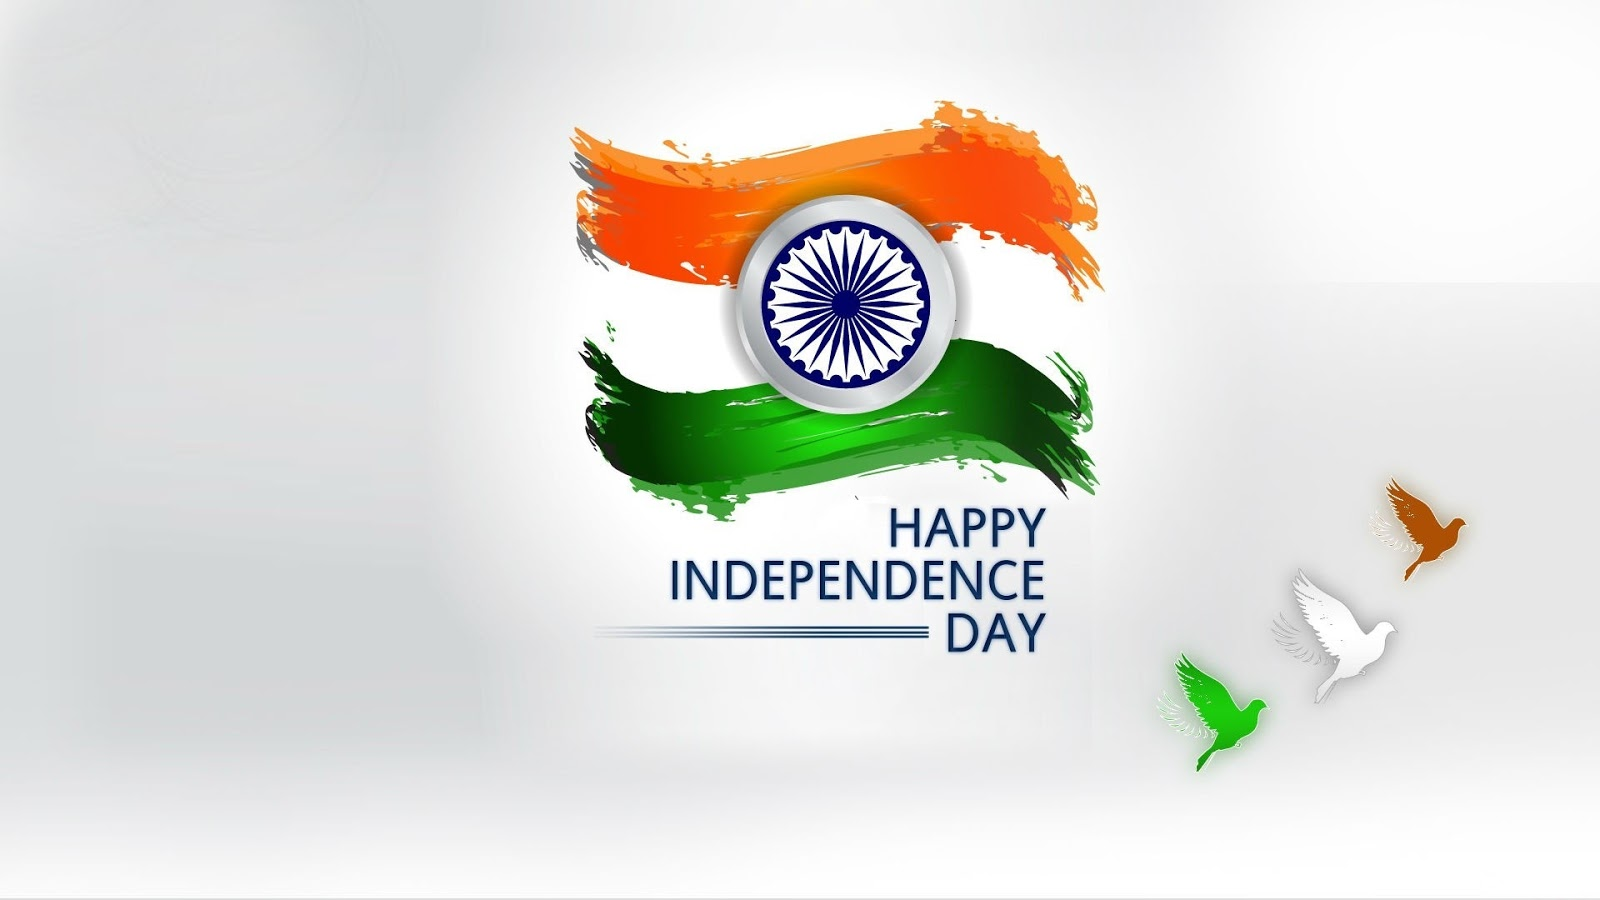 happy independence day wallpapers collection hd india